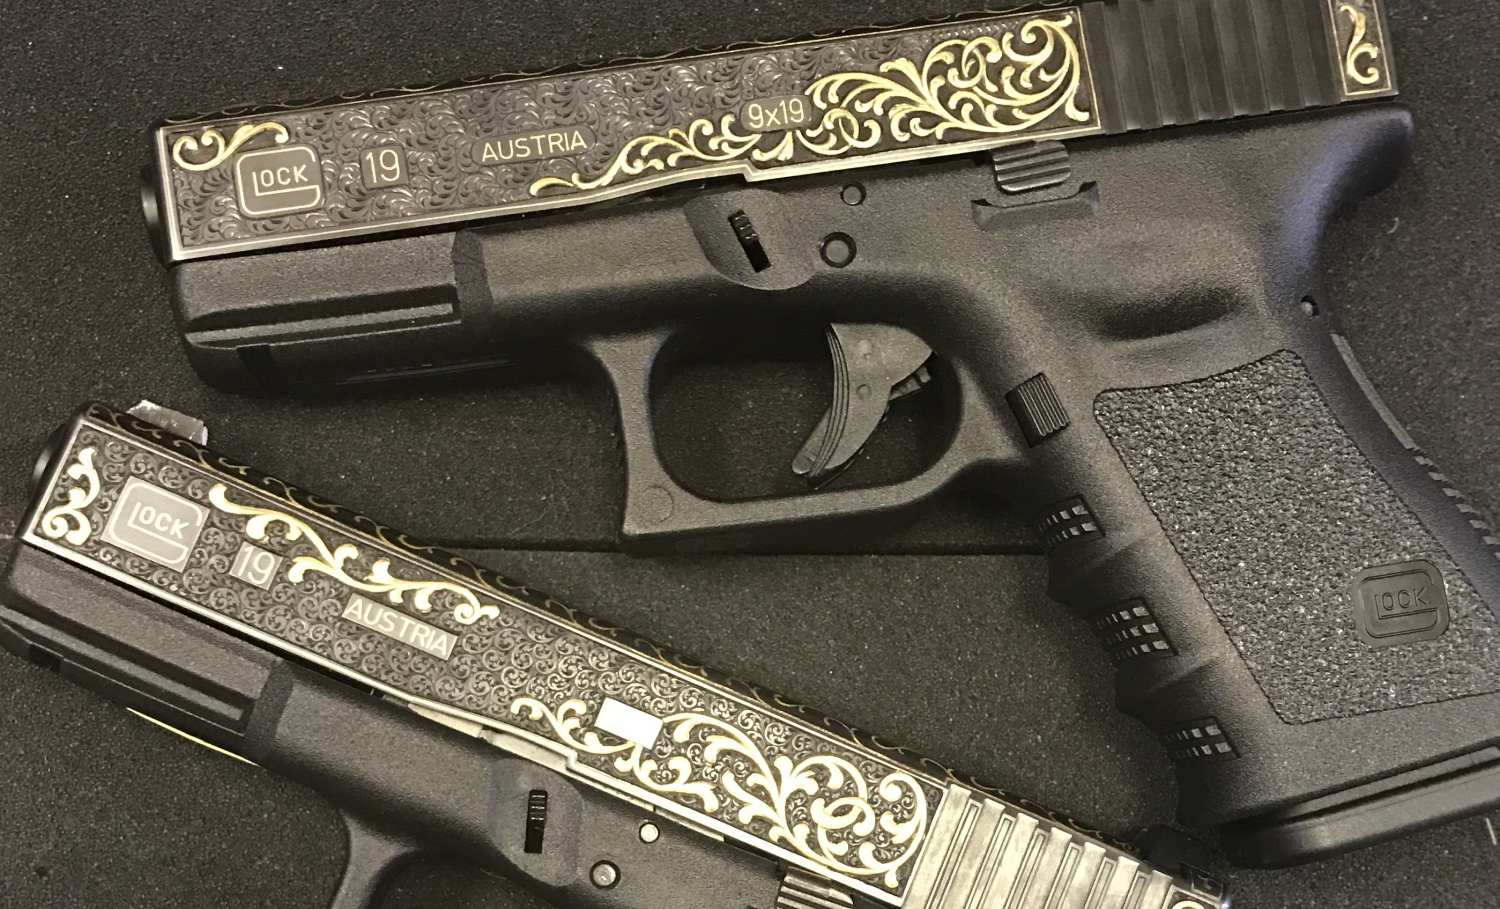 Hand Engraved And Gold Inlaid Factory Glocks The Firearm